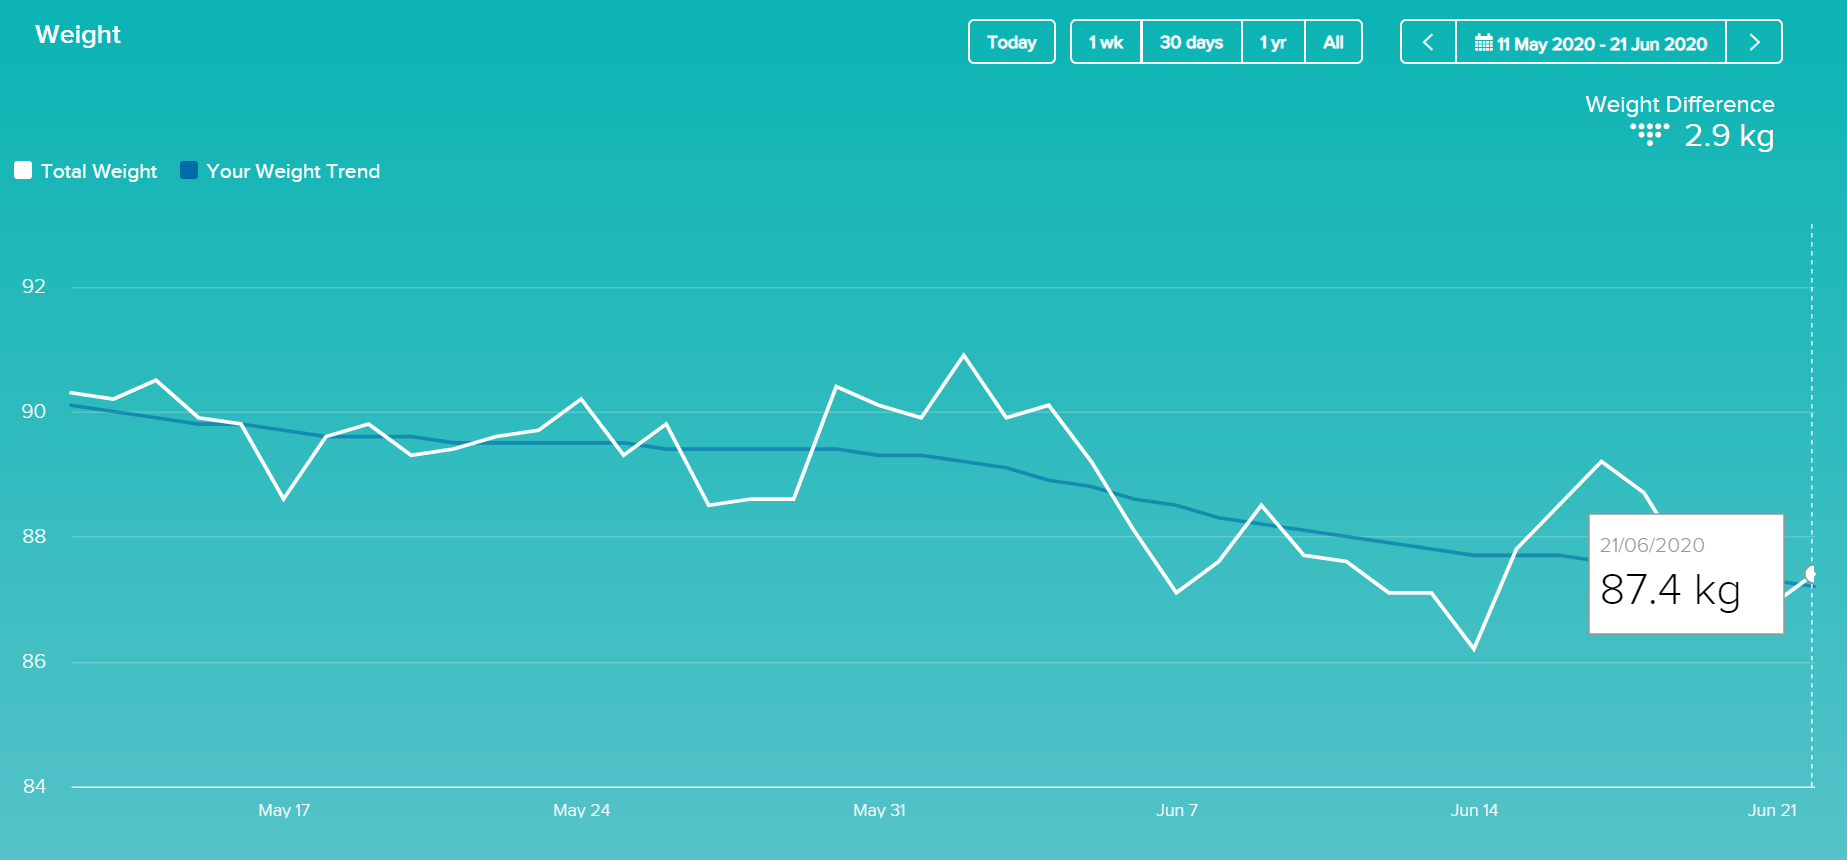 graph of weight progress over the last six weeks